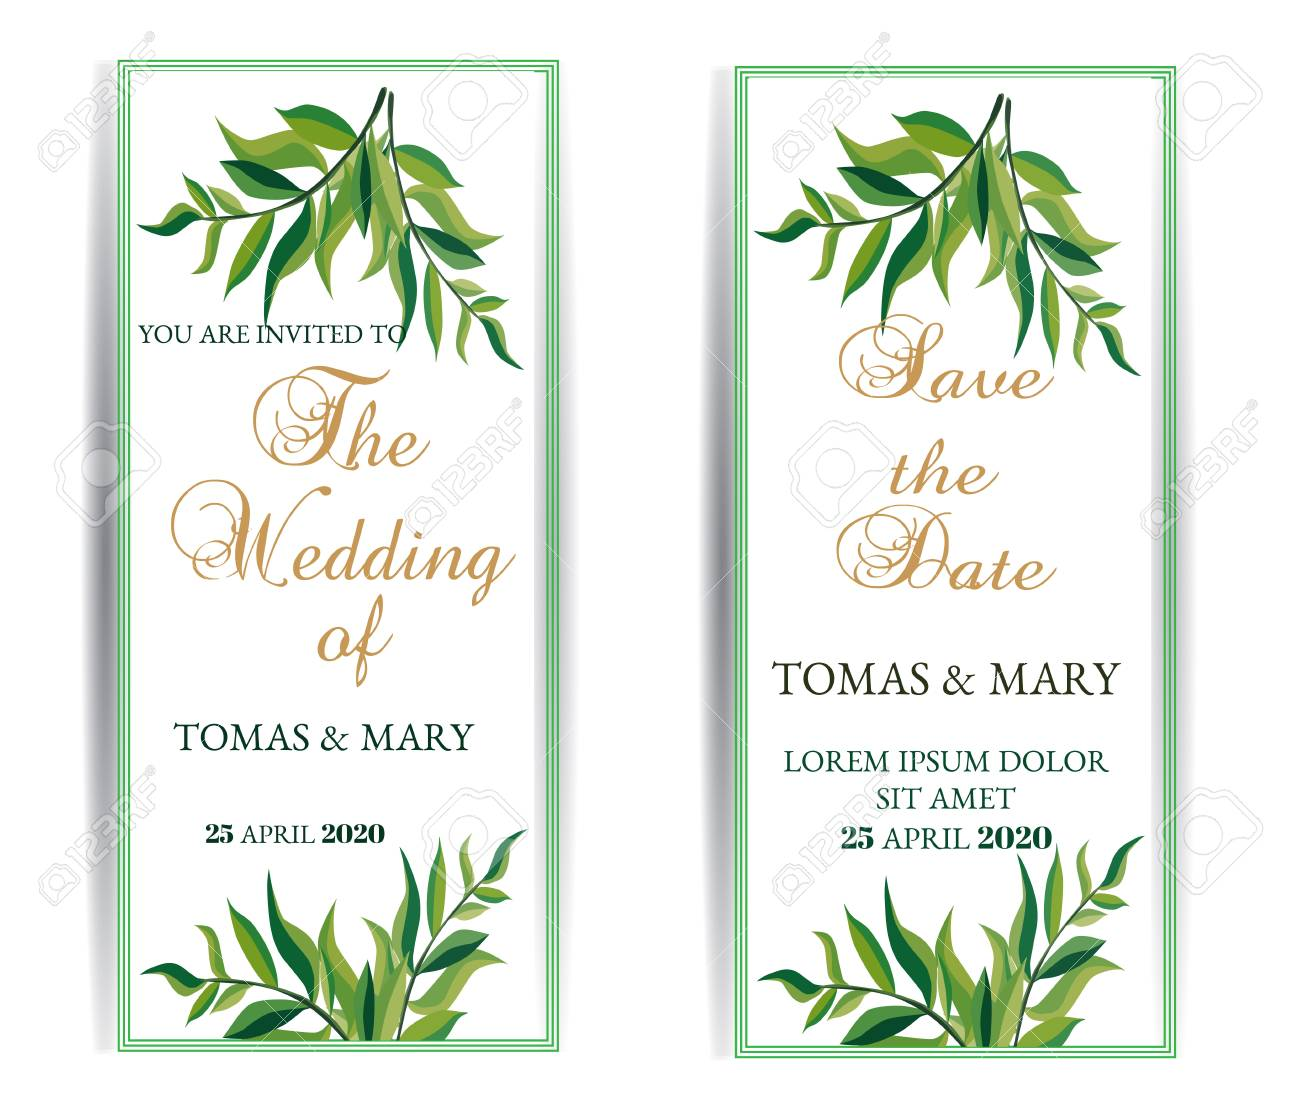 photograph regarding Wedding Cards Printable titled Greenery marriage invitation template established. Printable marriage invitations